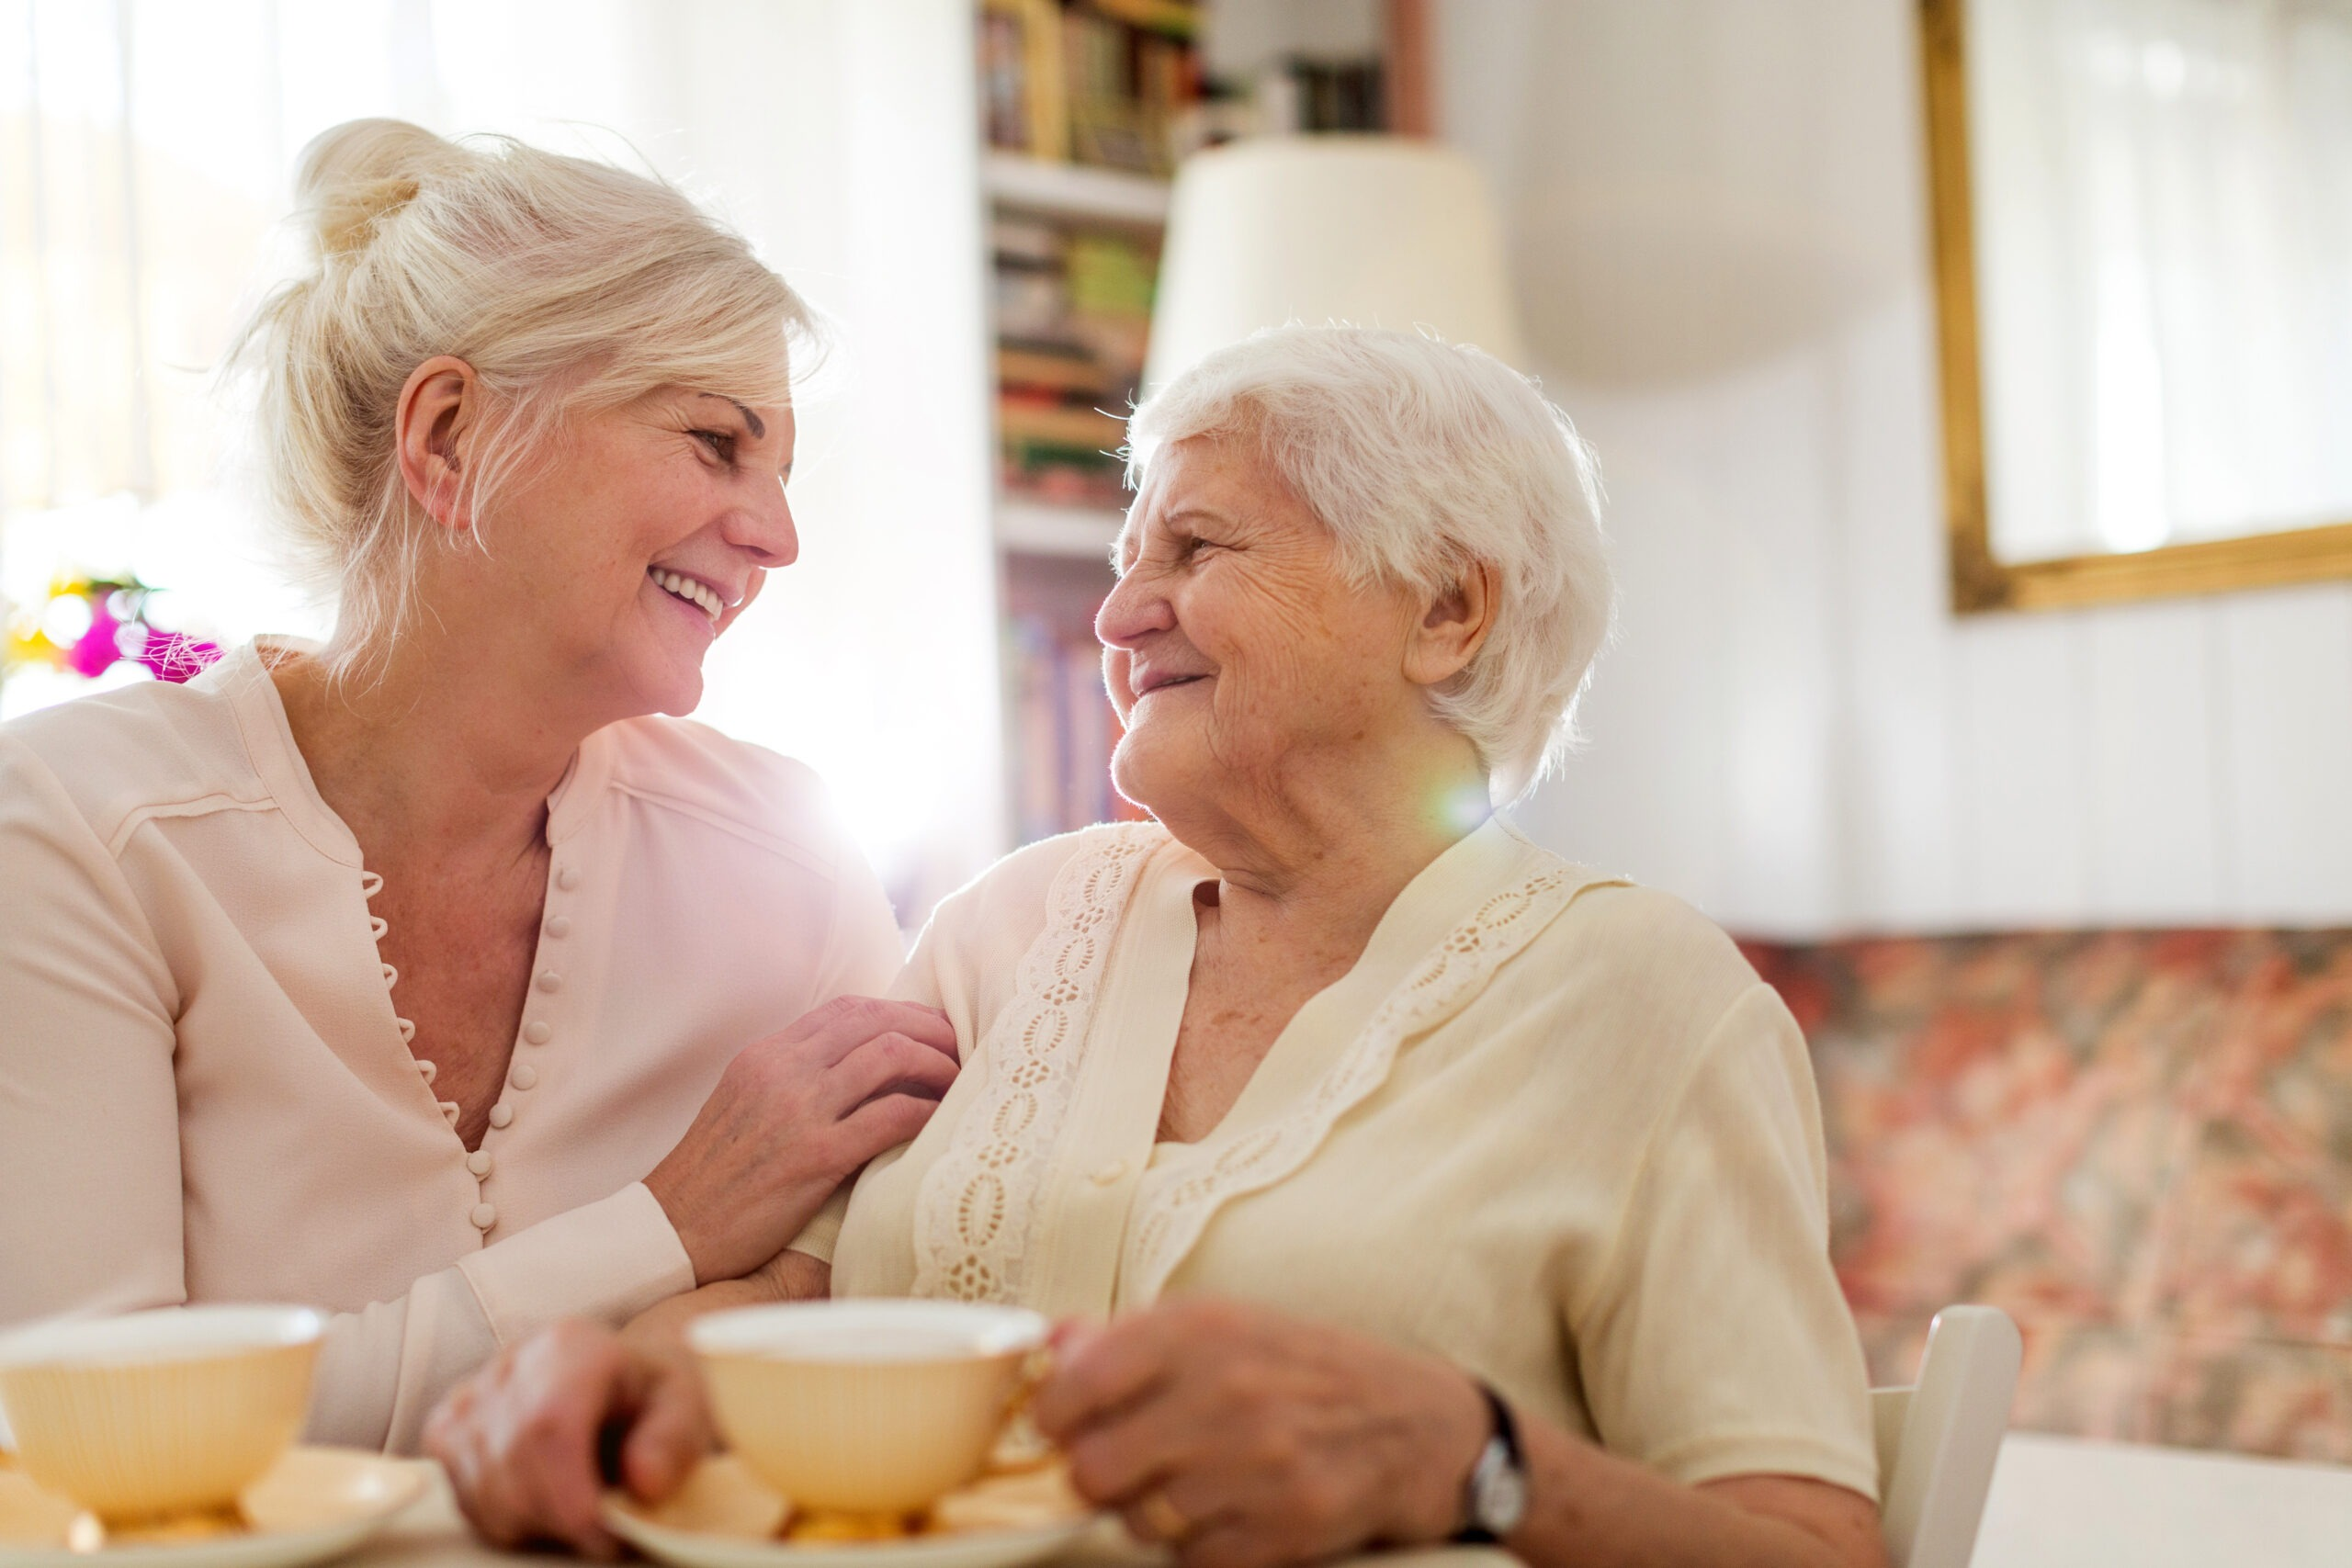 Senior woman spending quality time with her daughter thanks to home hospice palliative care